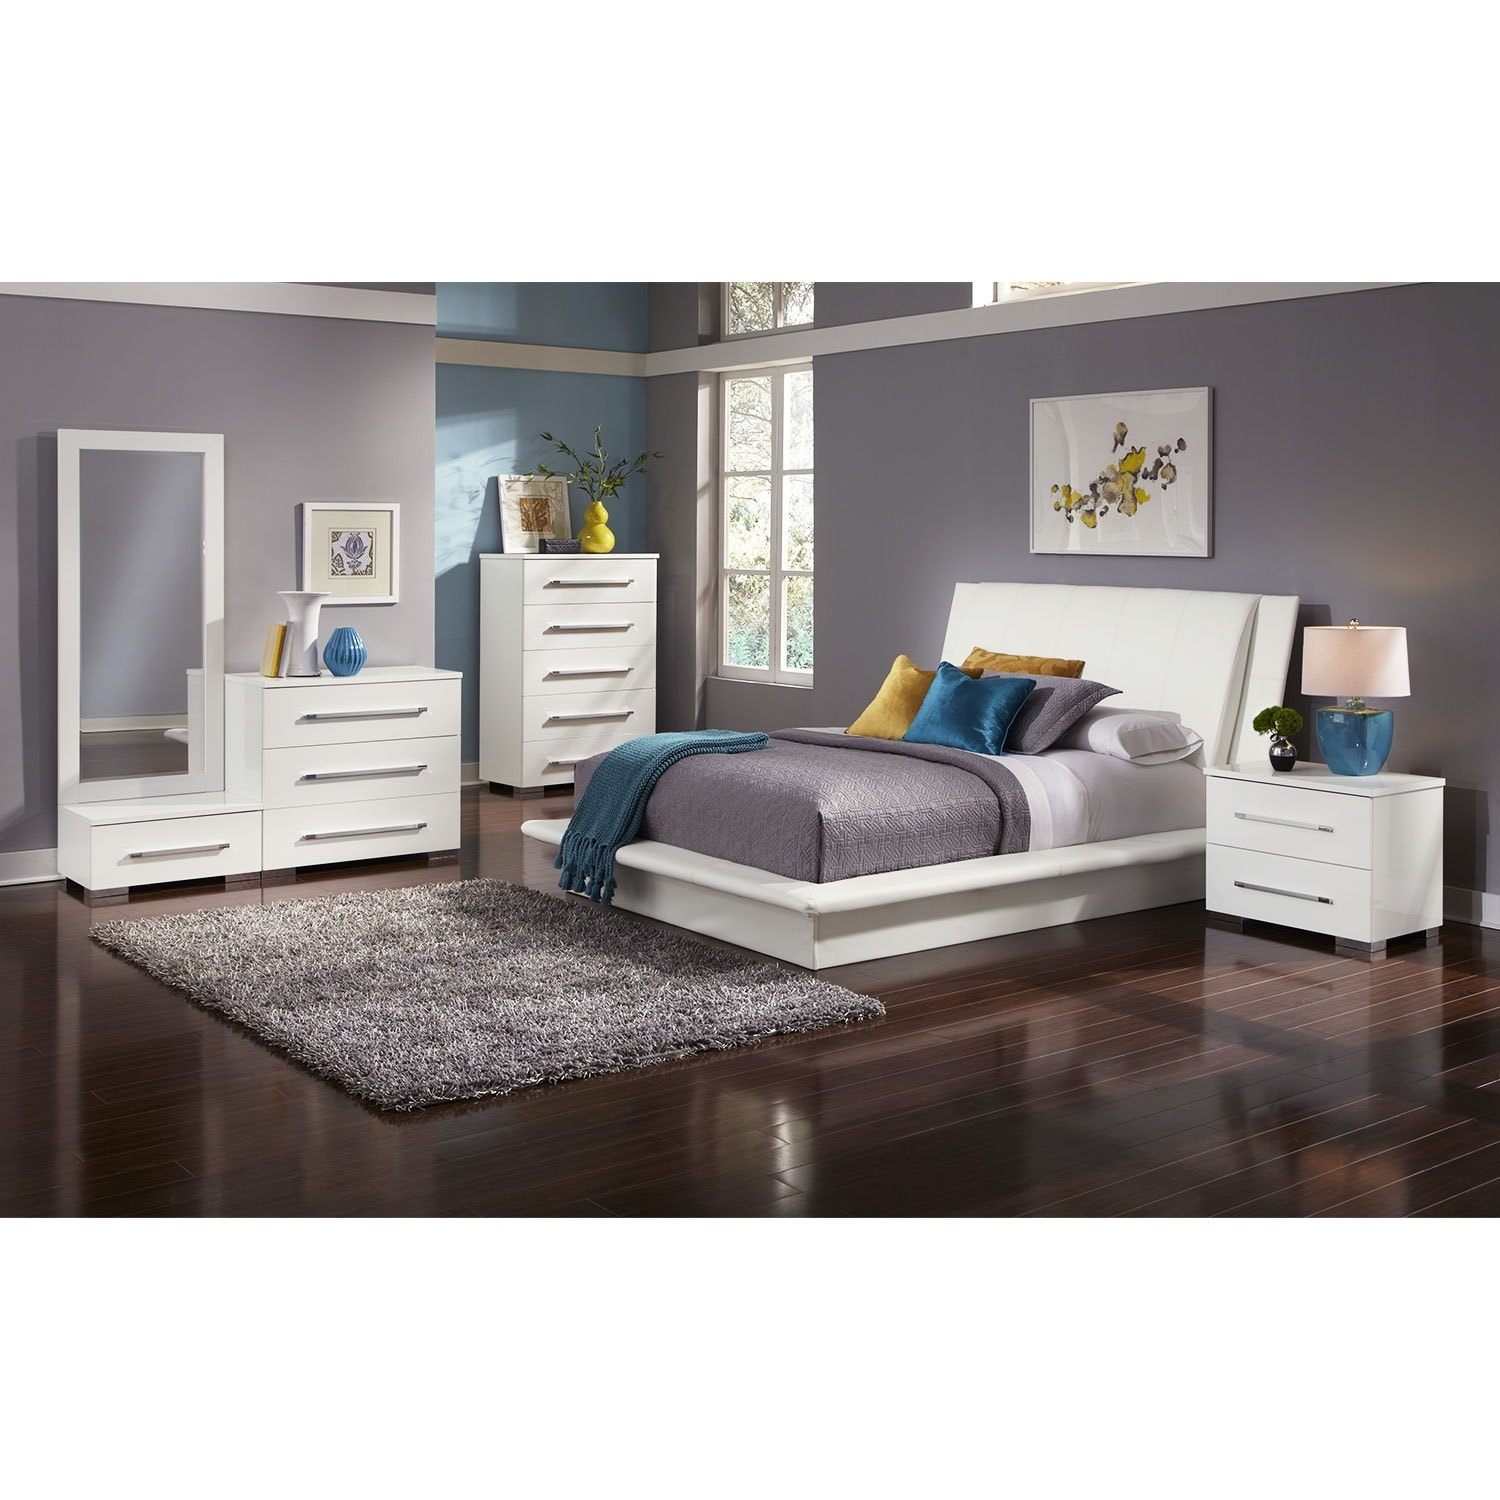 dimora bedroom set dimora 7 upholstered bedroom set white 11428